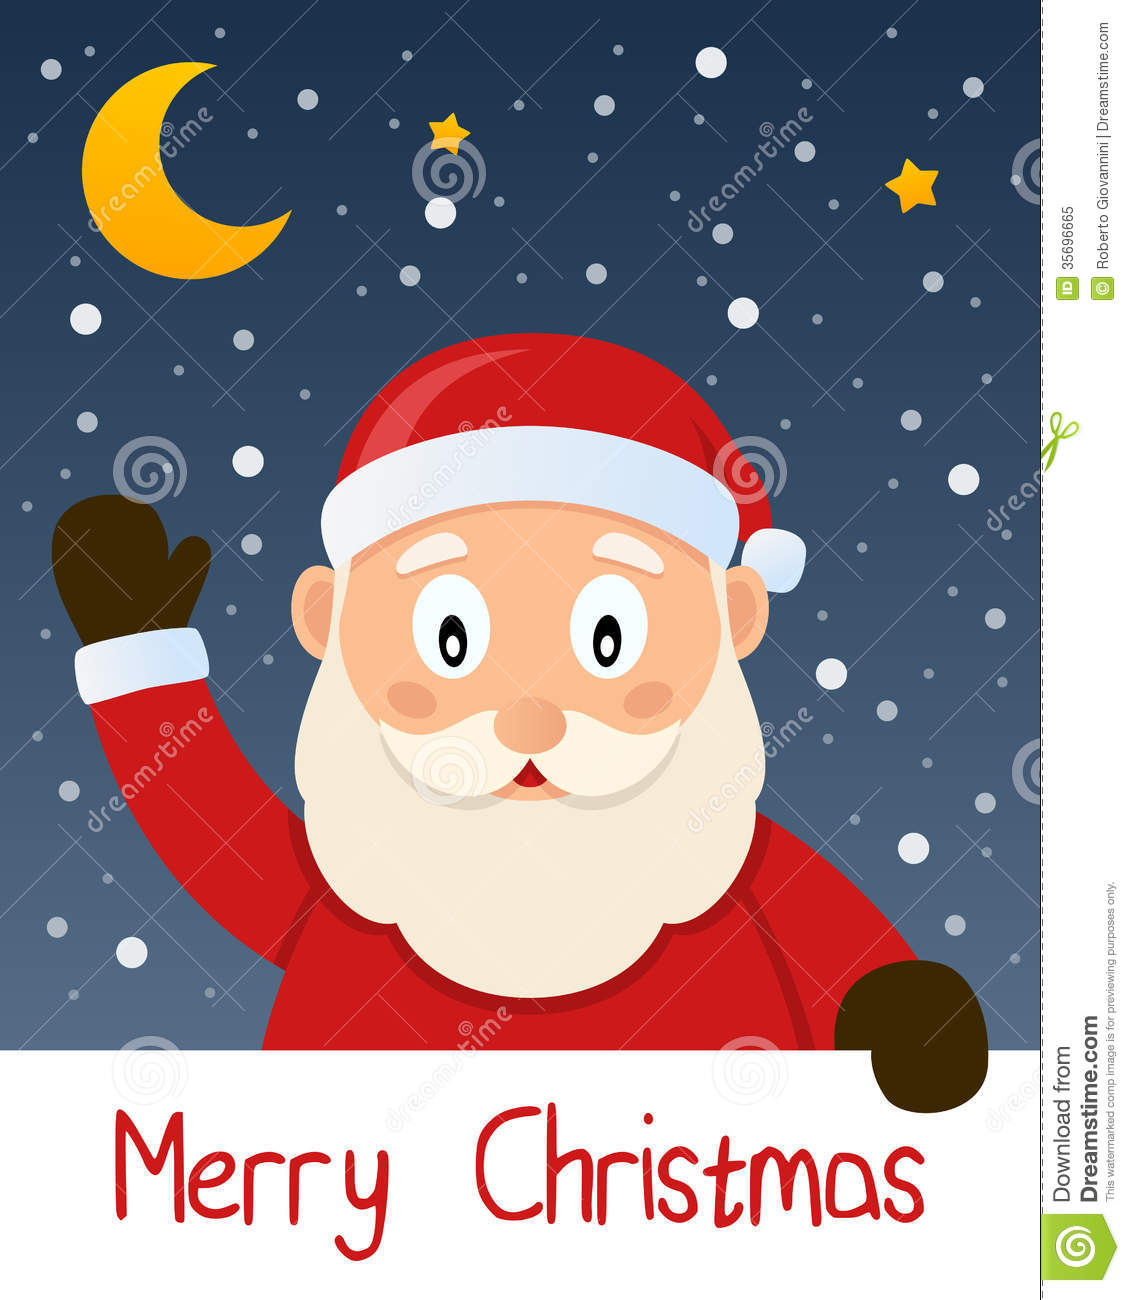 Santa Claus Christmas Greeting Card Royalty Free Stock Photo ...